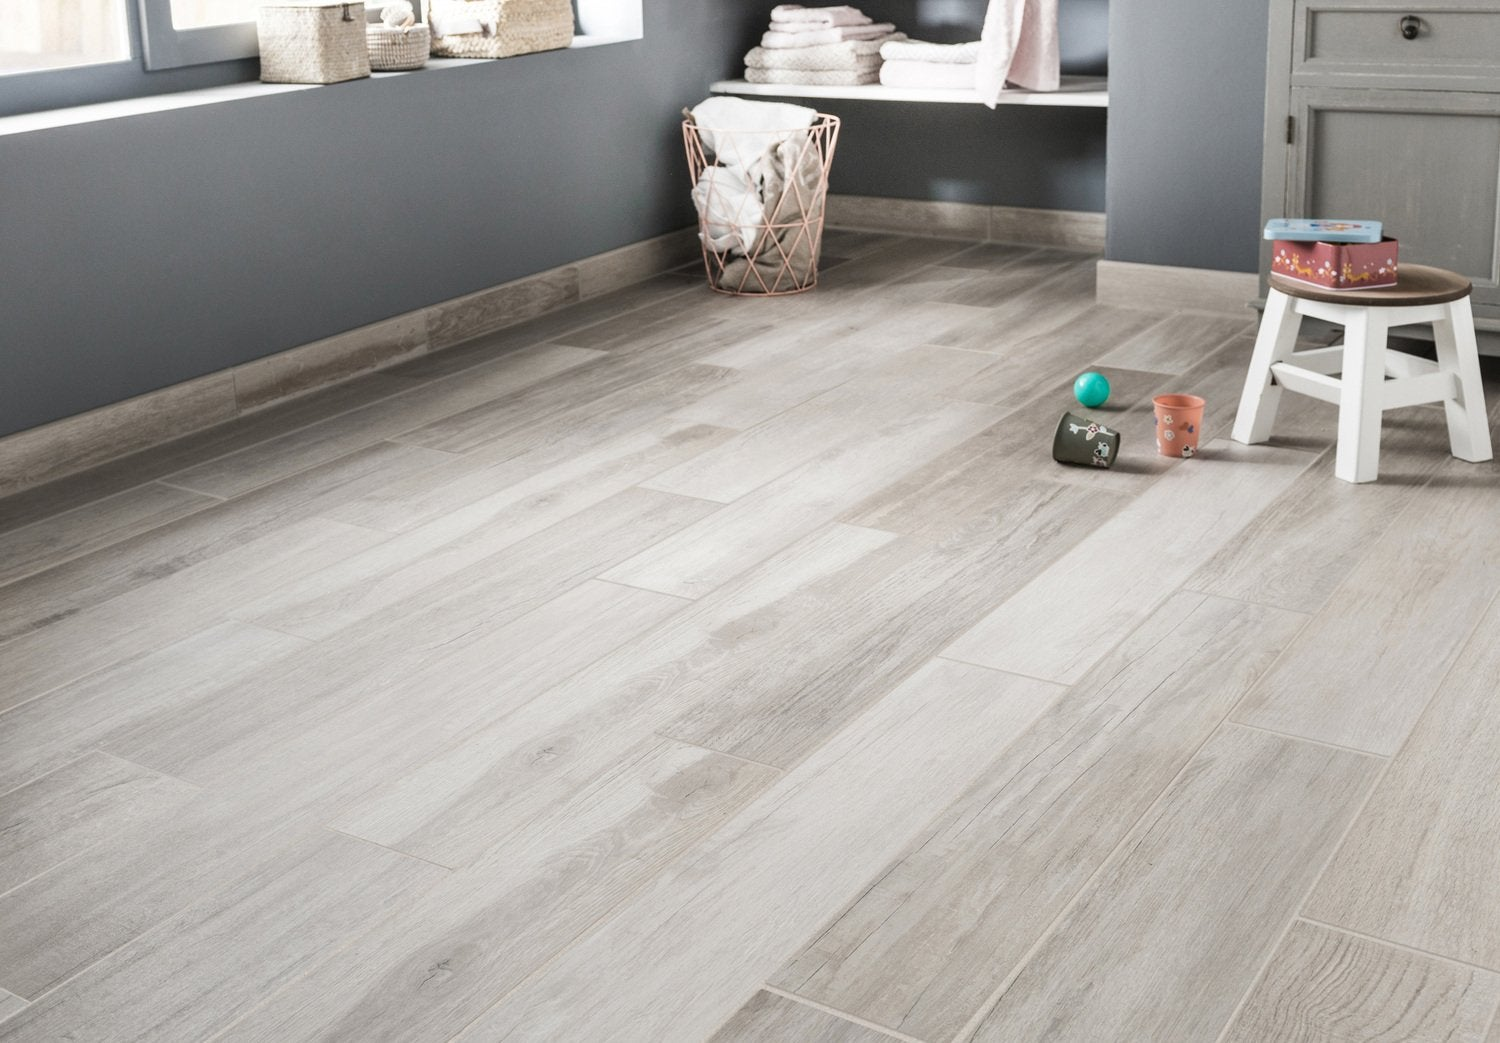 Blanc / Beige / Naturel Gris / Argent GRAND DESIR   SUPERGRES